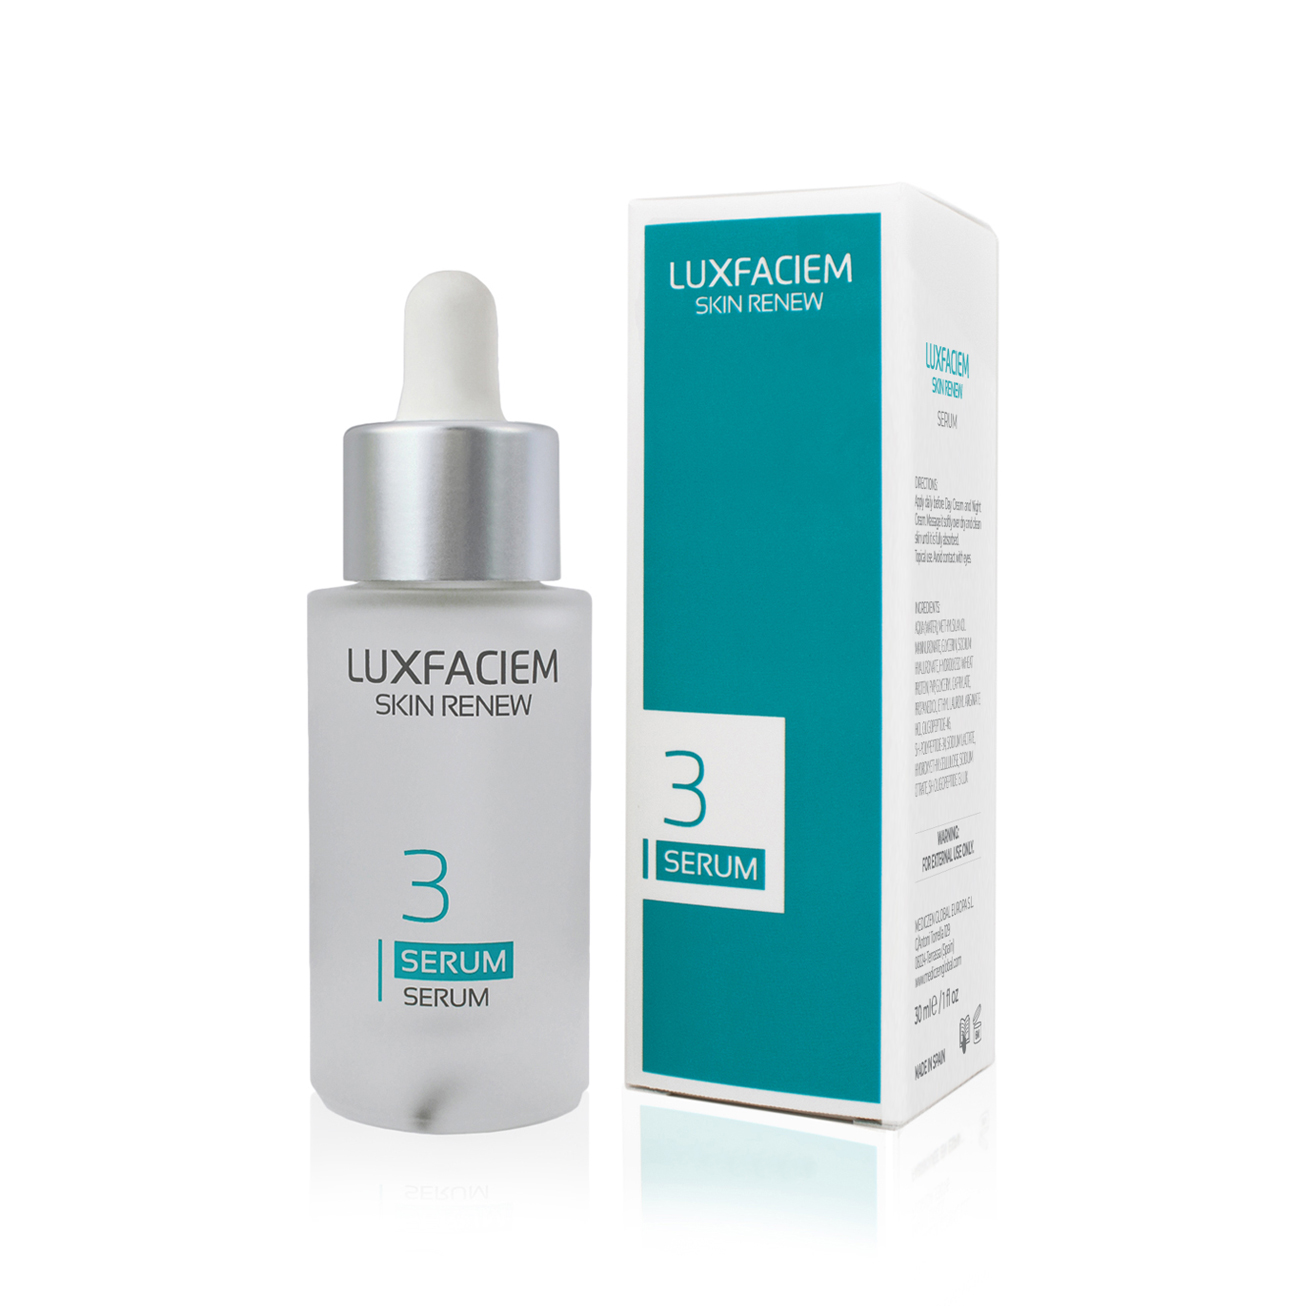 LUXFACIEM-SKIN-CARE-ANTIAGING-PREMIUM-SERUM